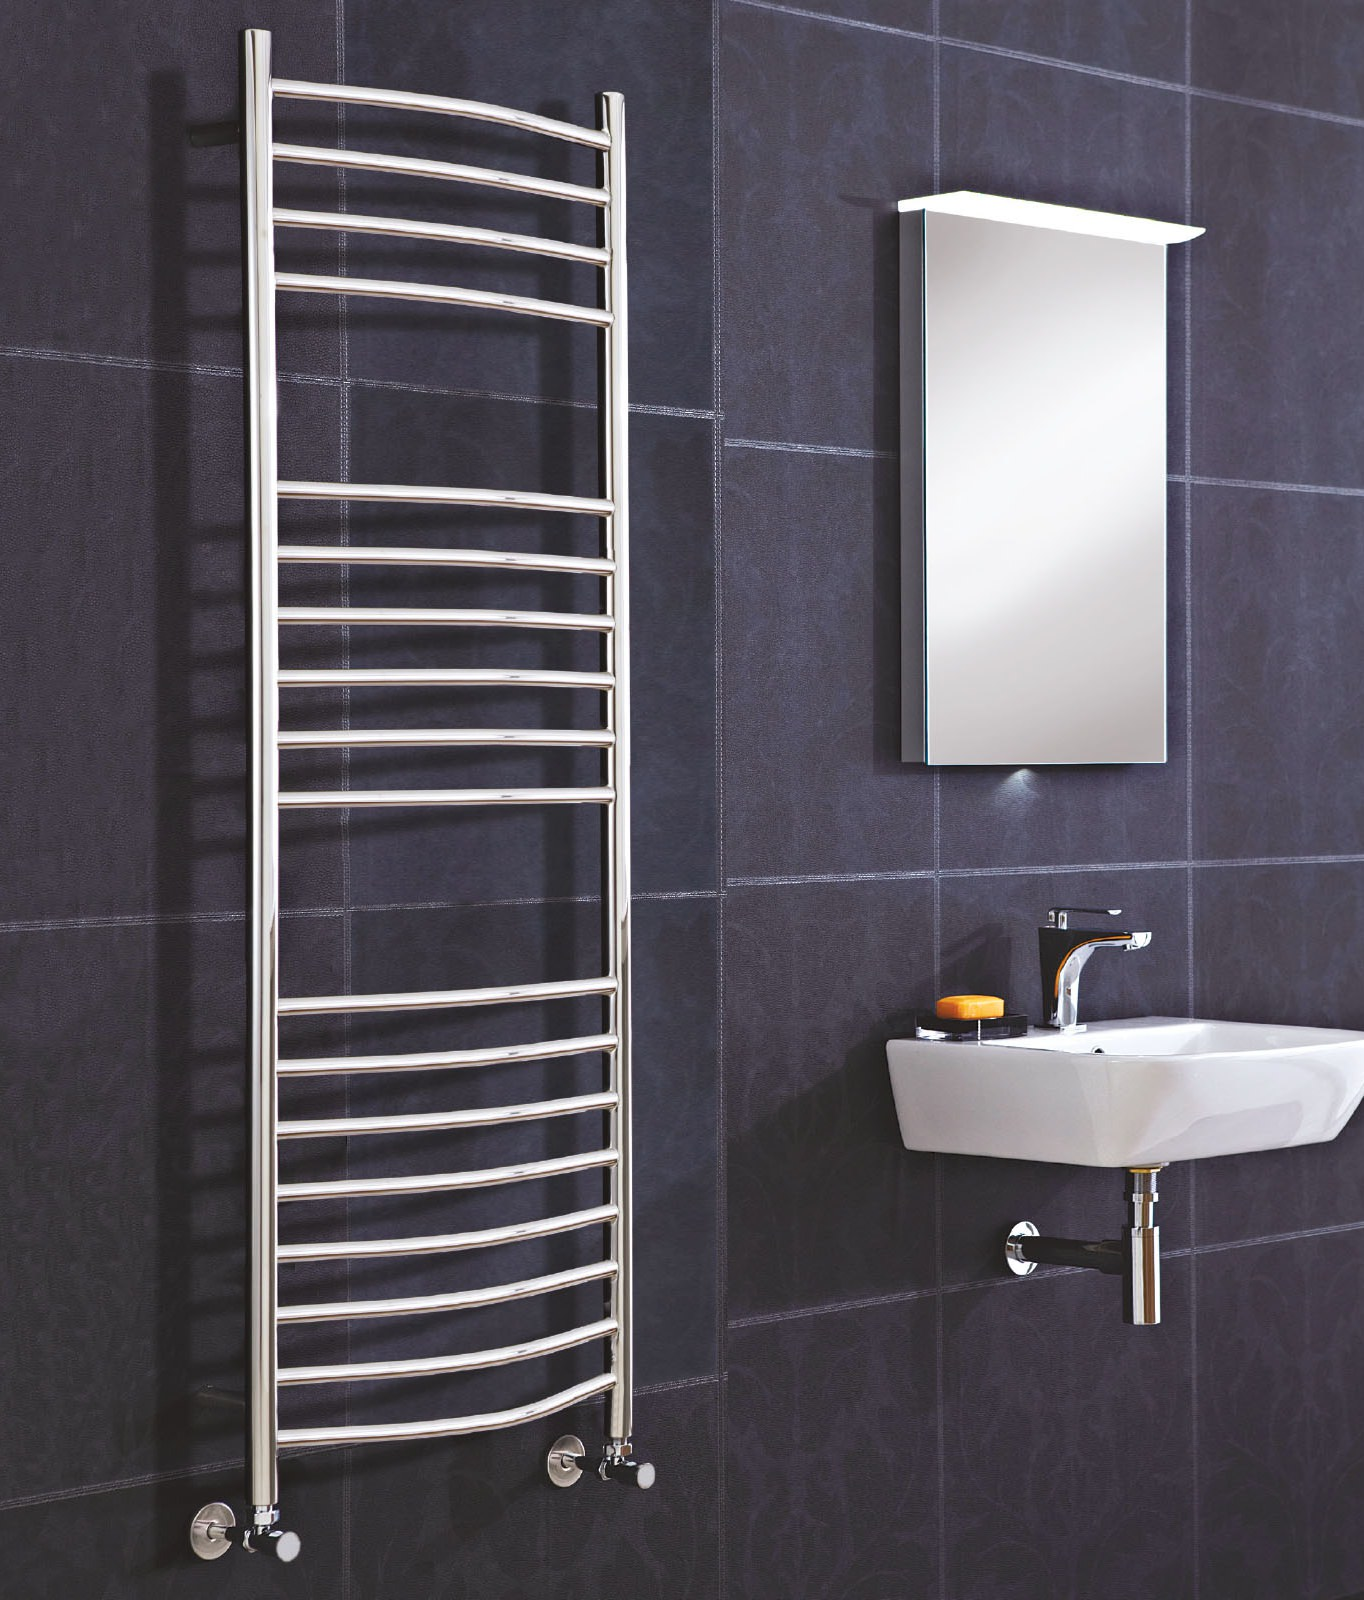 Stainless Steel Heated Towel Rail Radiator: Phoenix Thame 500 X 800mm Pre-Filled Electric Curved